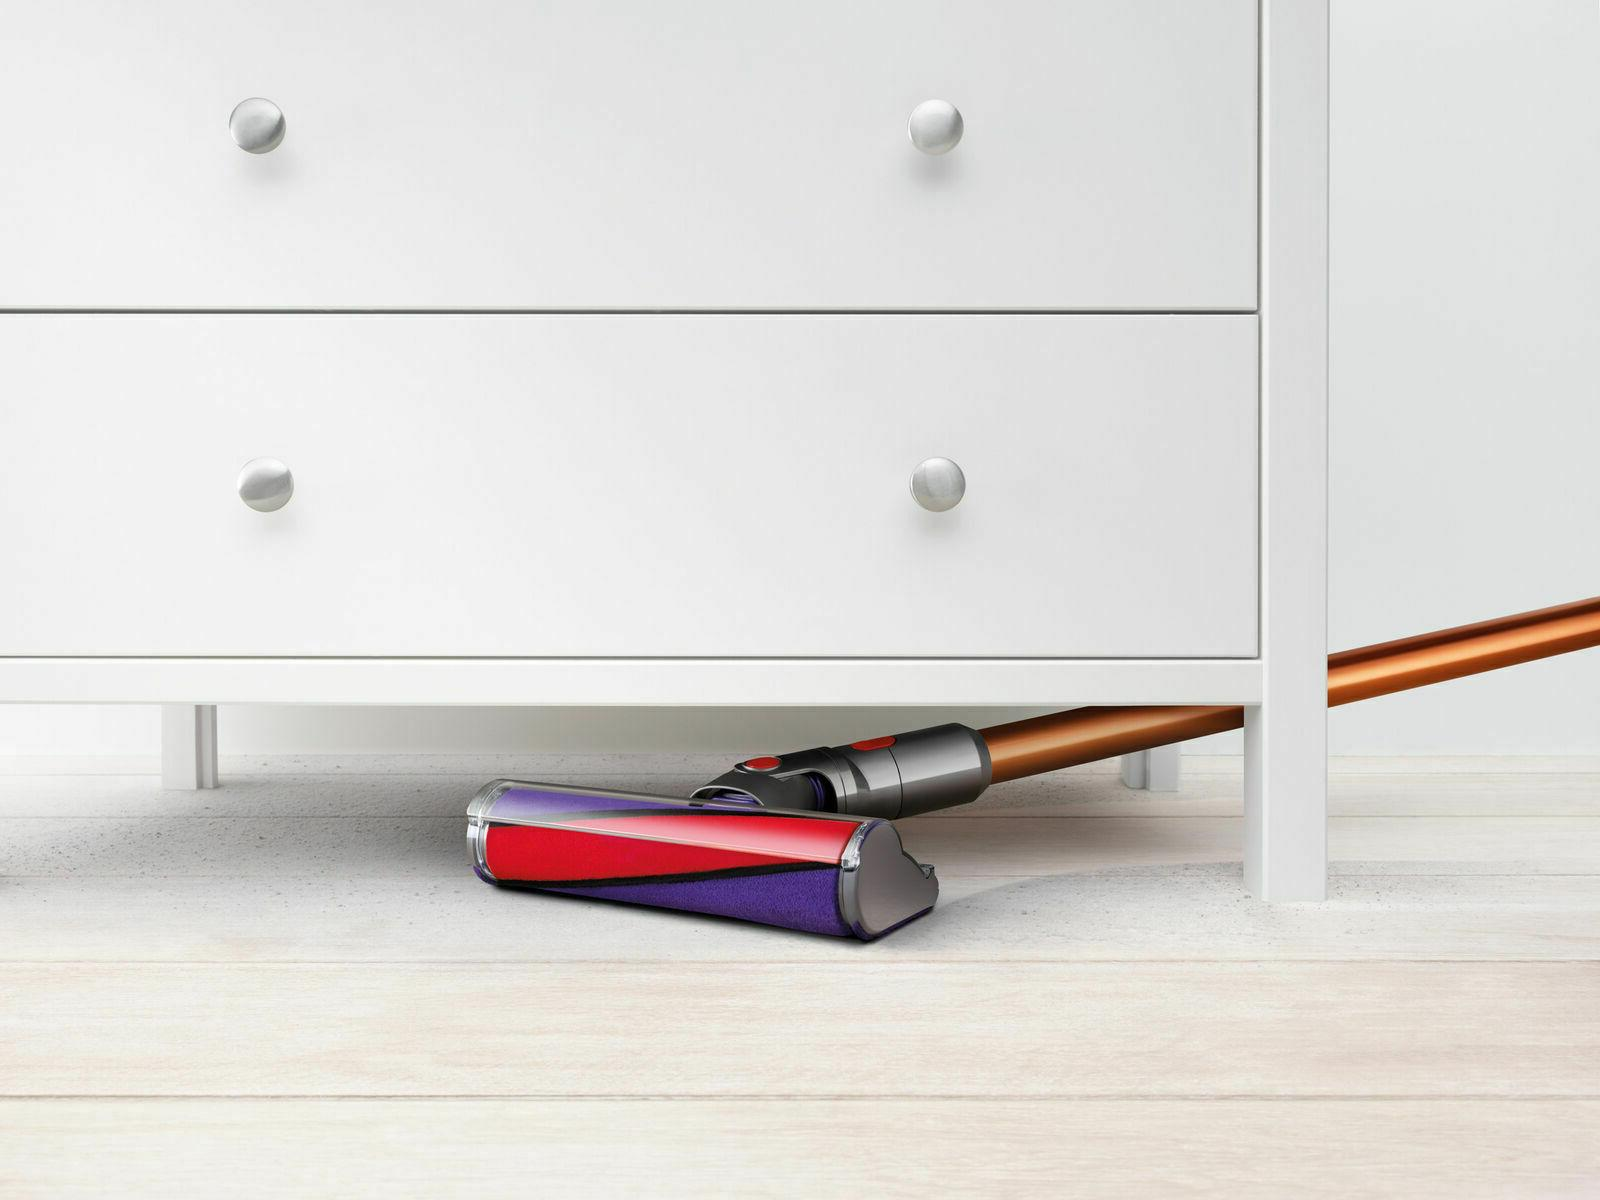 Dyson V10 pro with accessories